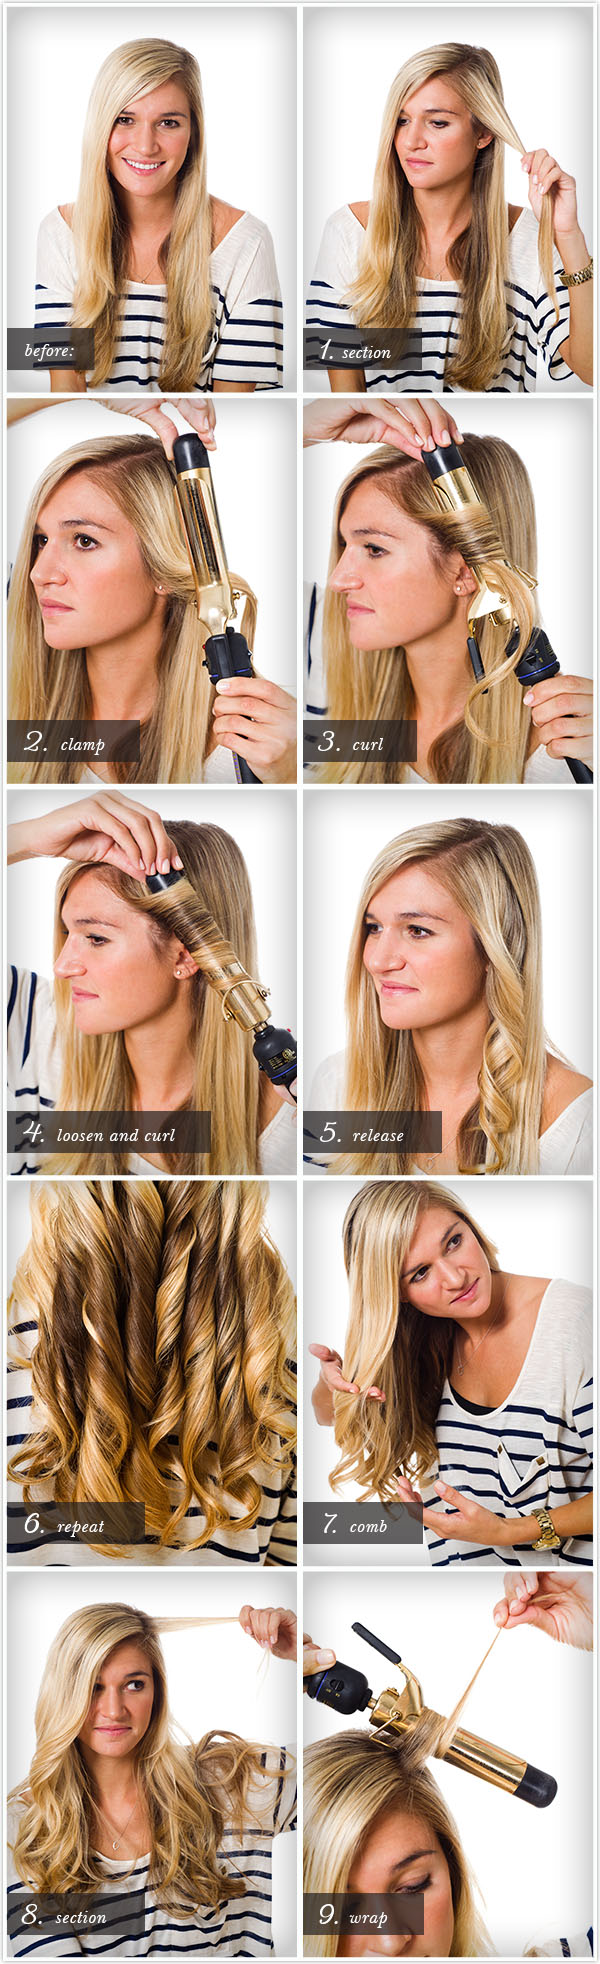 Natural Ways To Make Your Hair Straight